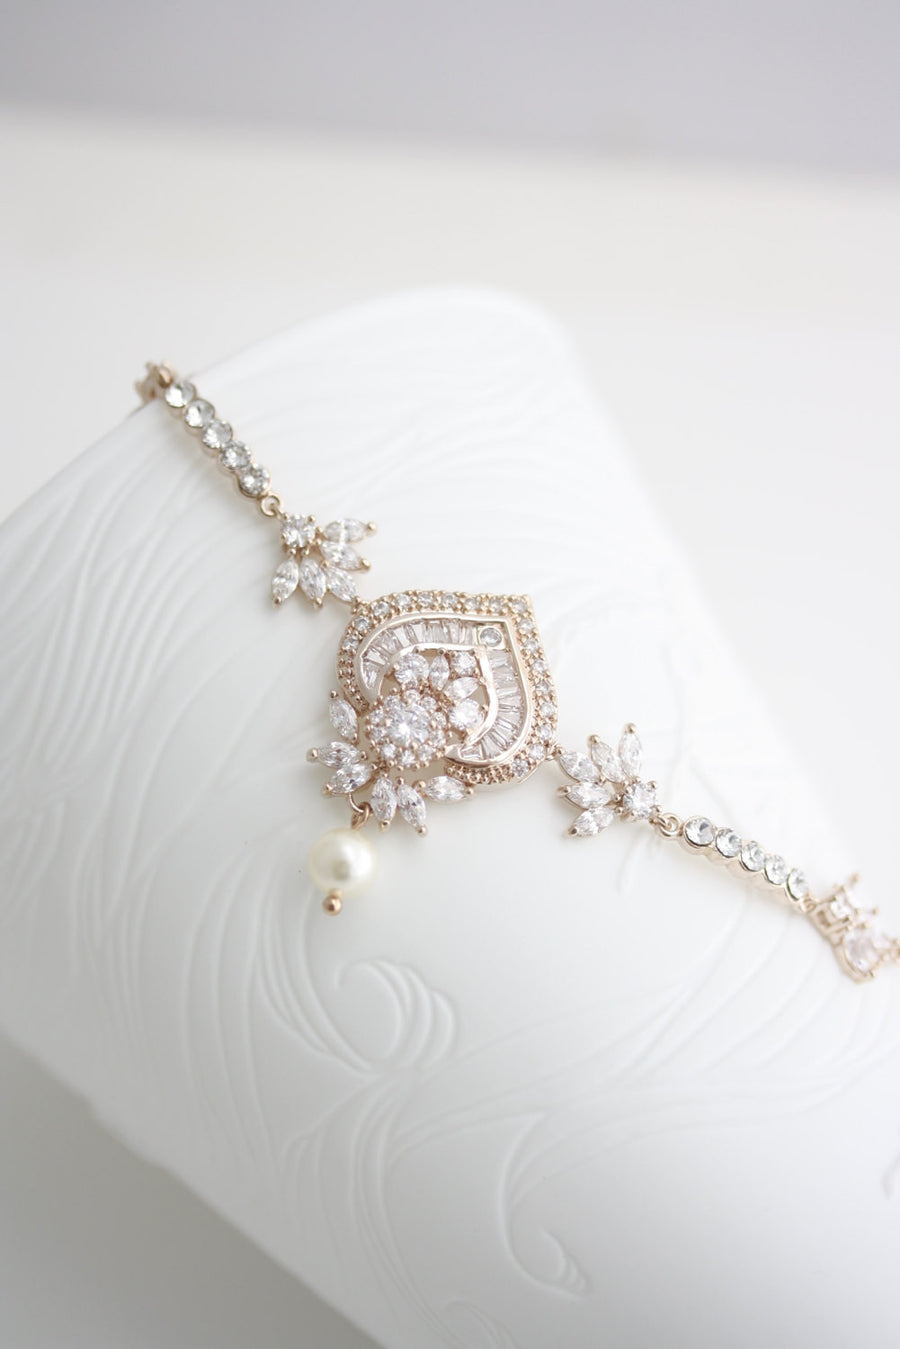 Evie Crystal Wedding Bracelet - Lulu Splendor